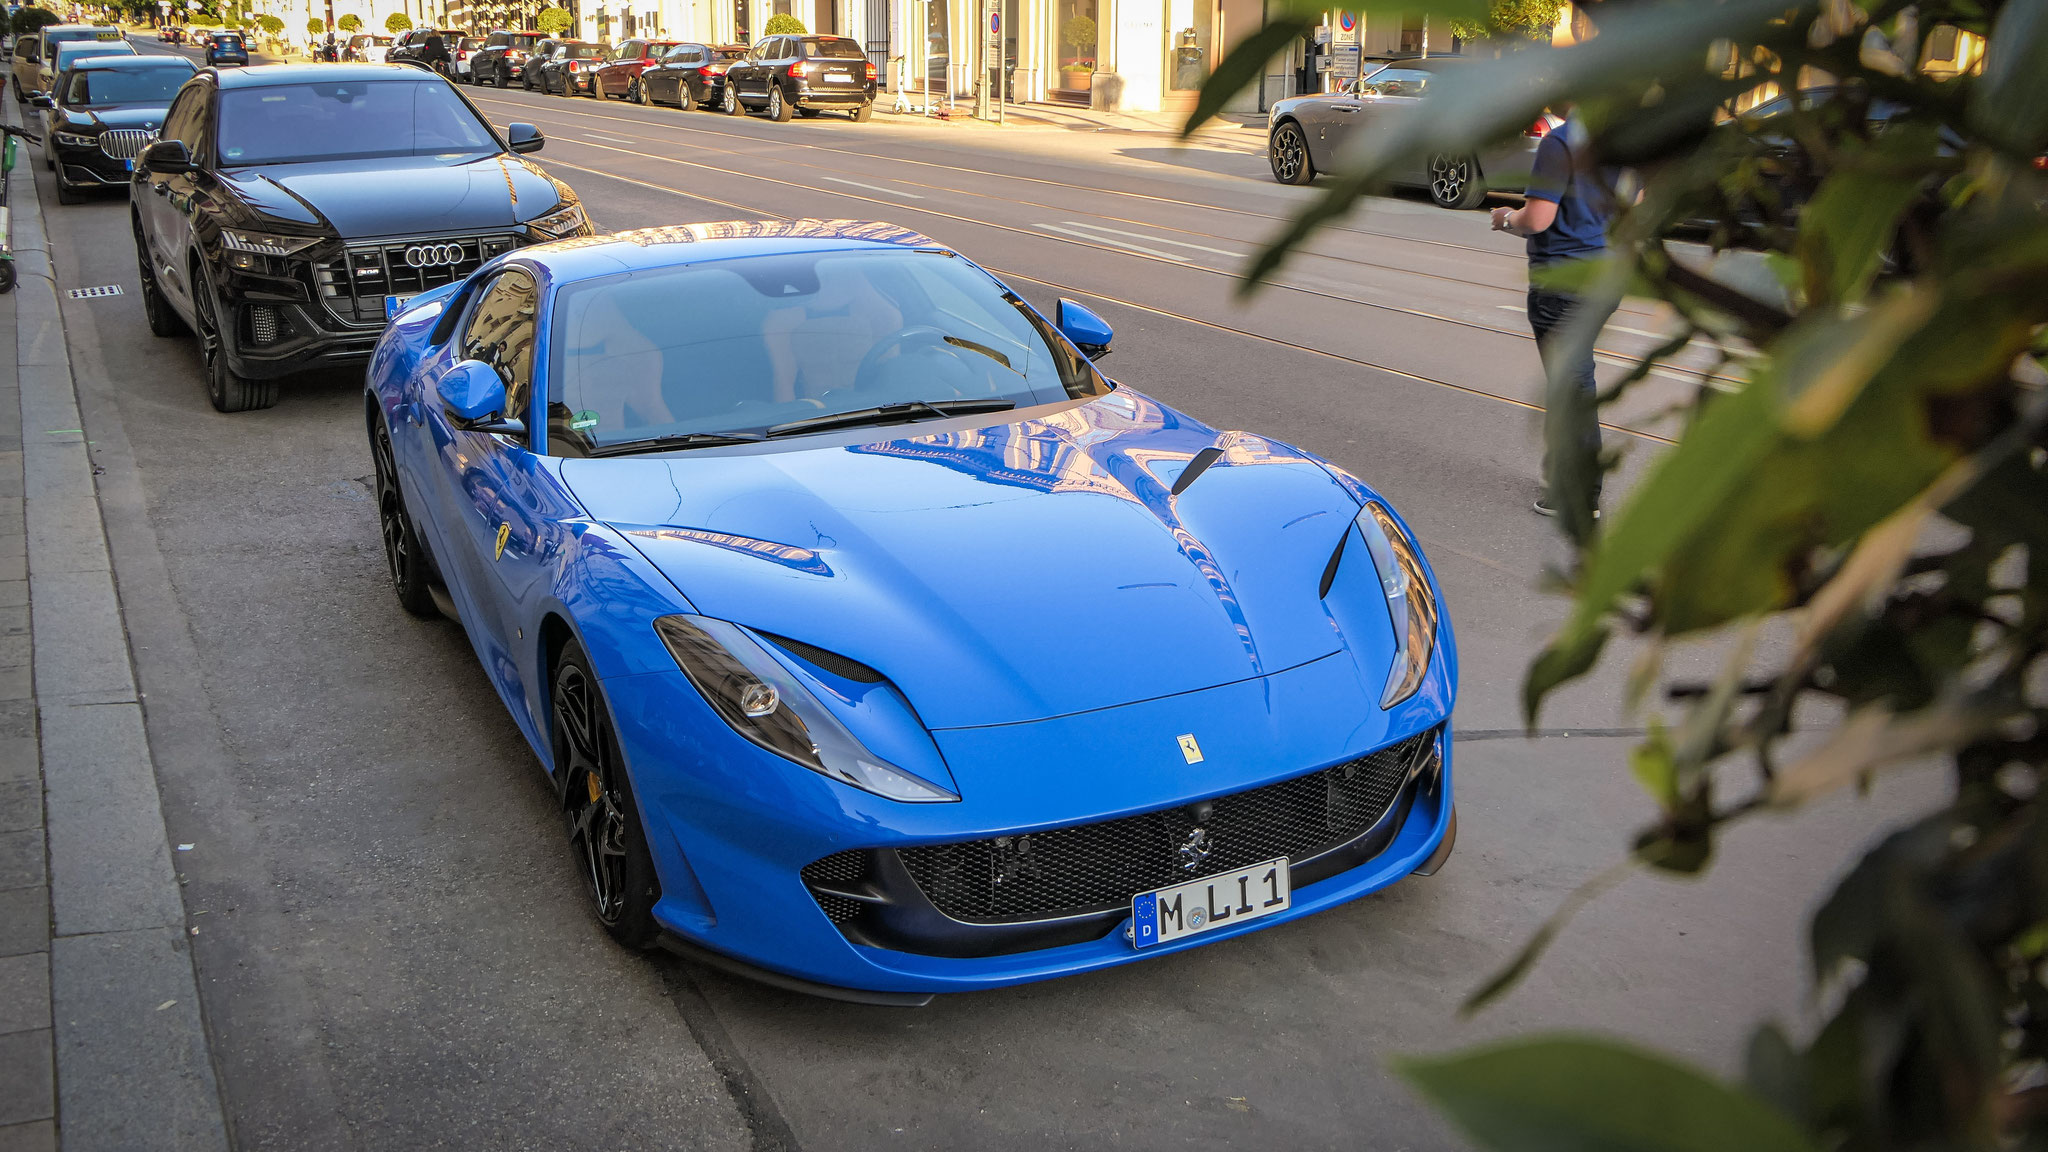 Ferrari 812 Superfast - M-LI-1